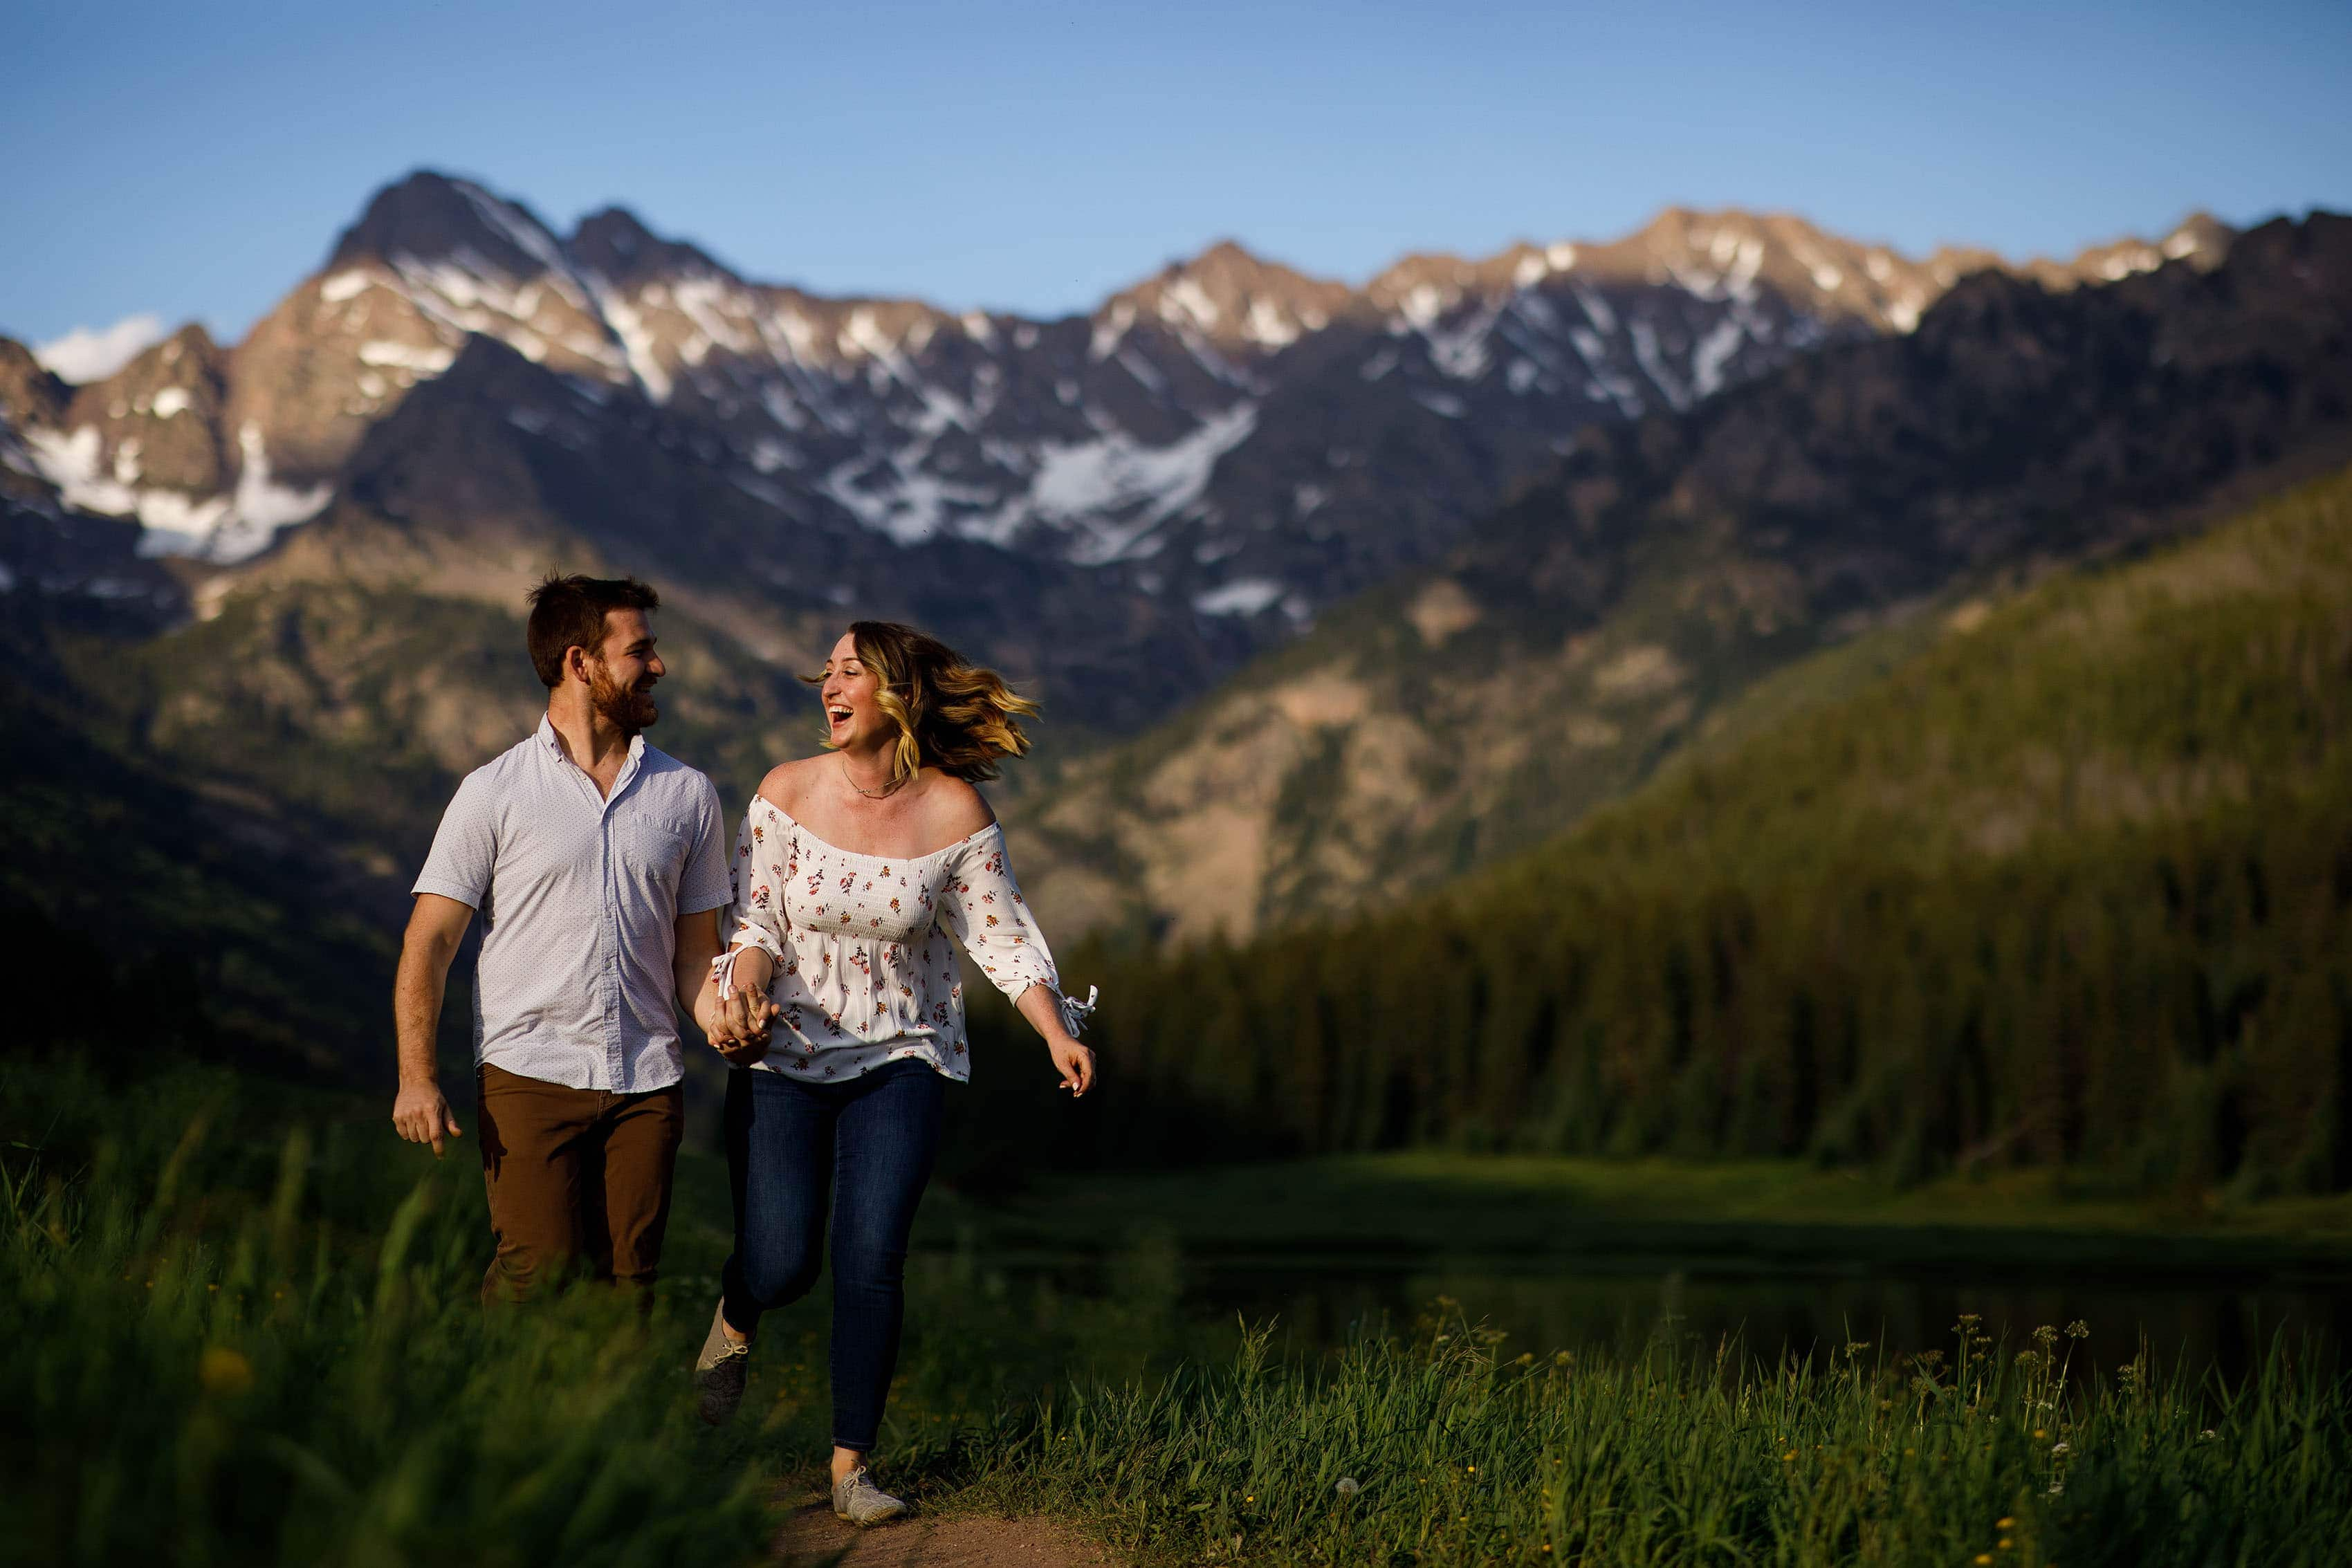 Laura and Ryan laugh and run at Piney River Ranch during their engagement session near Vail, Colorado